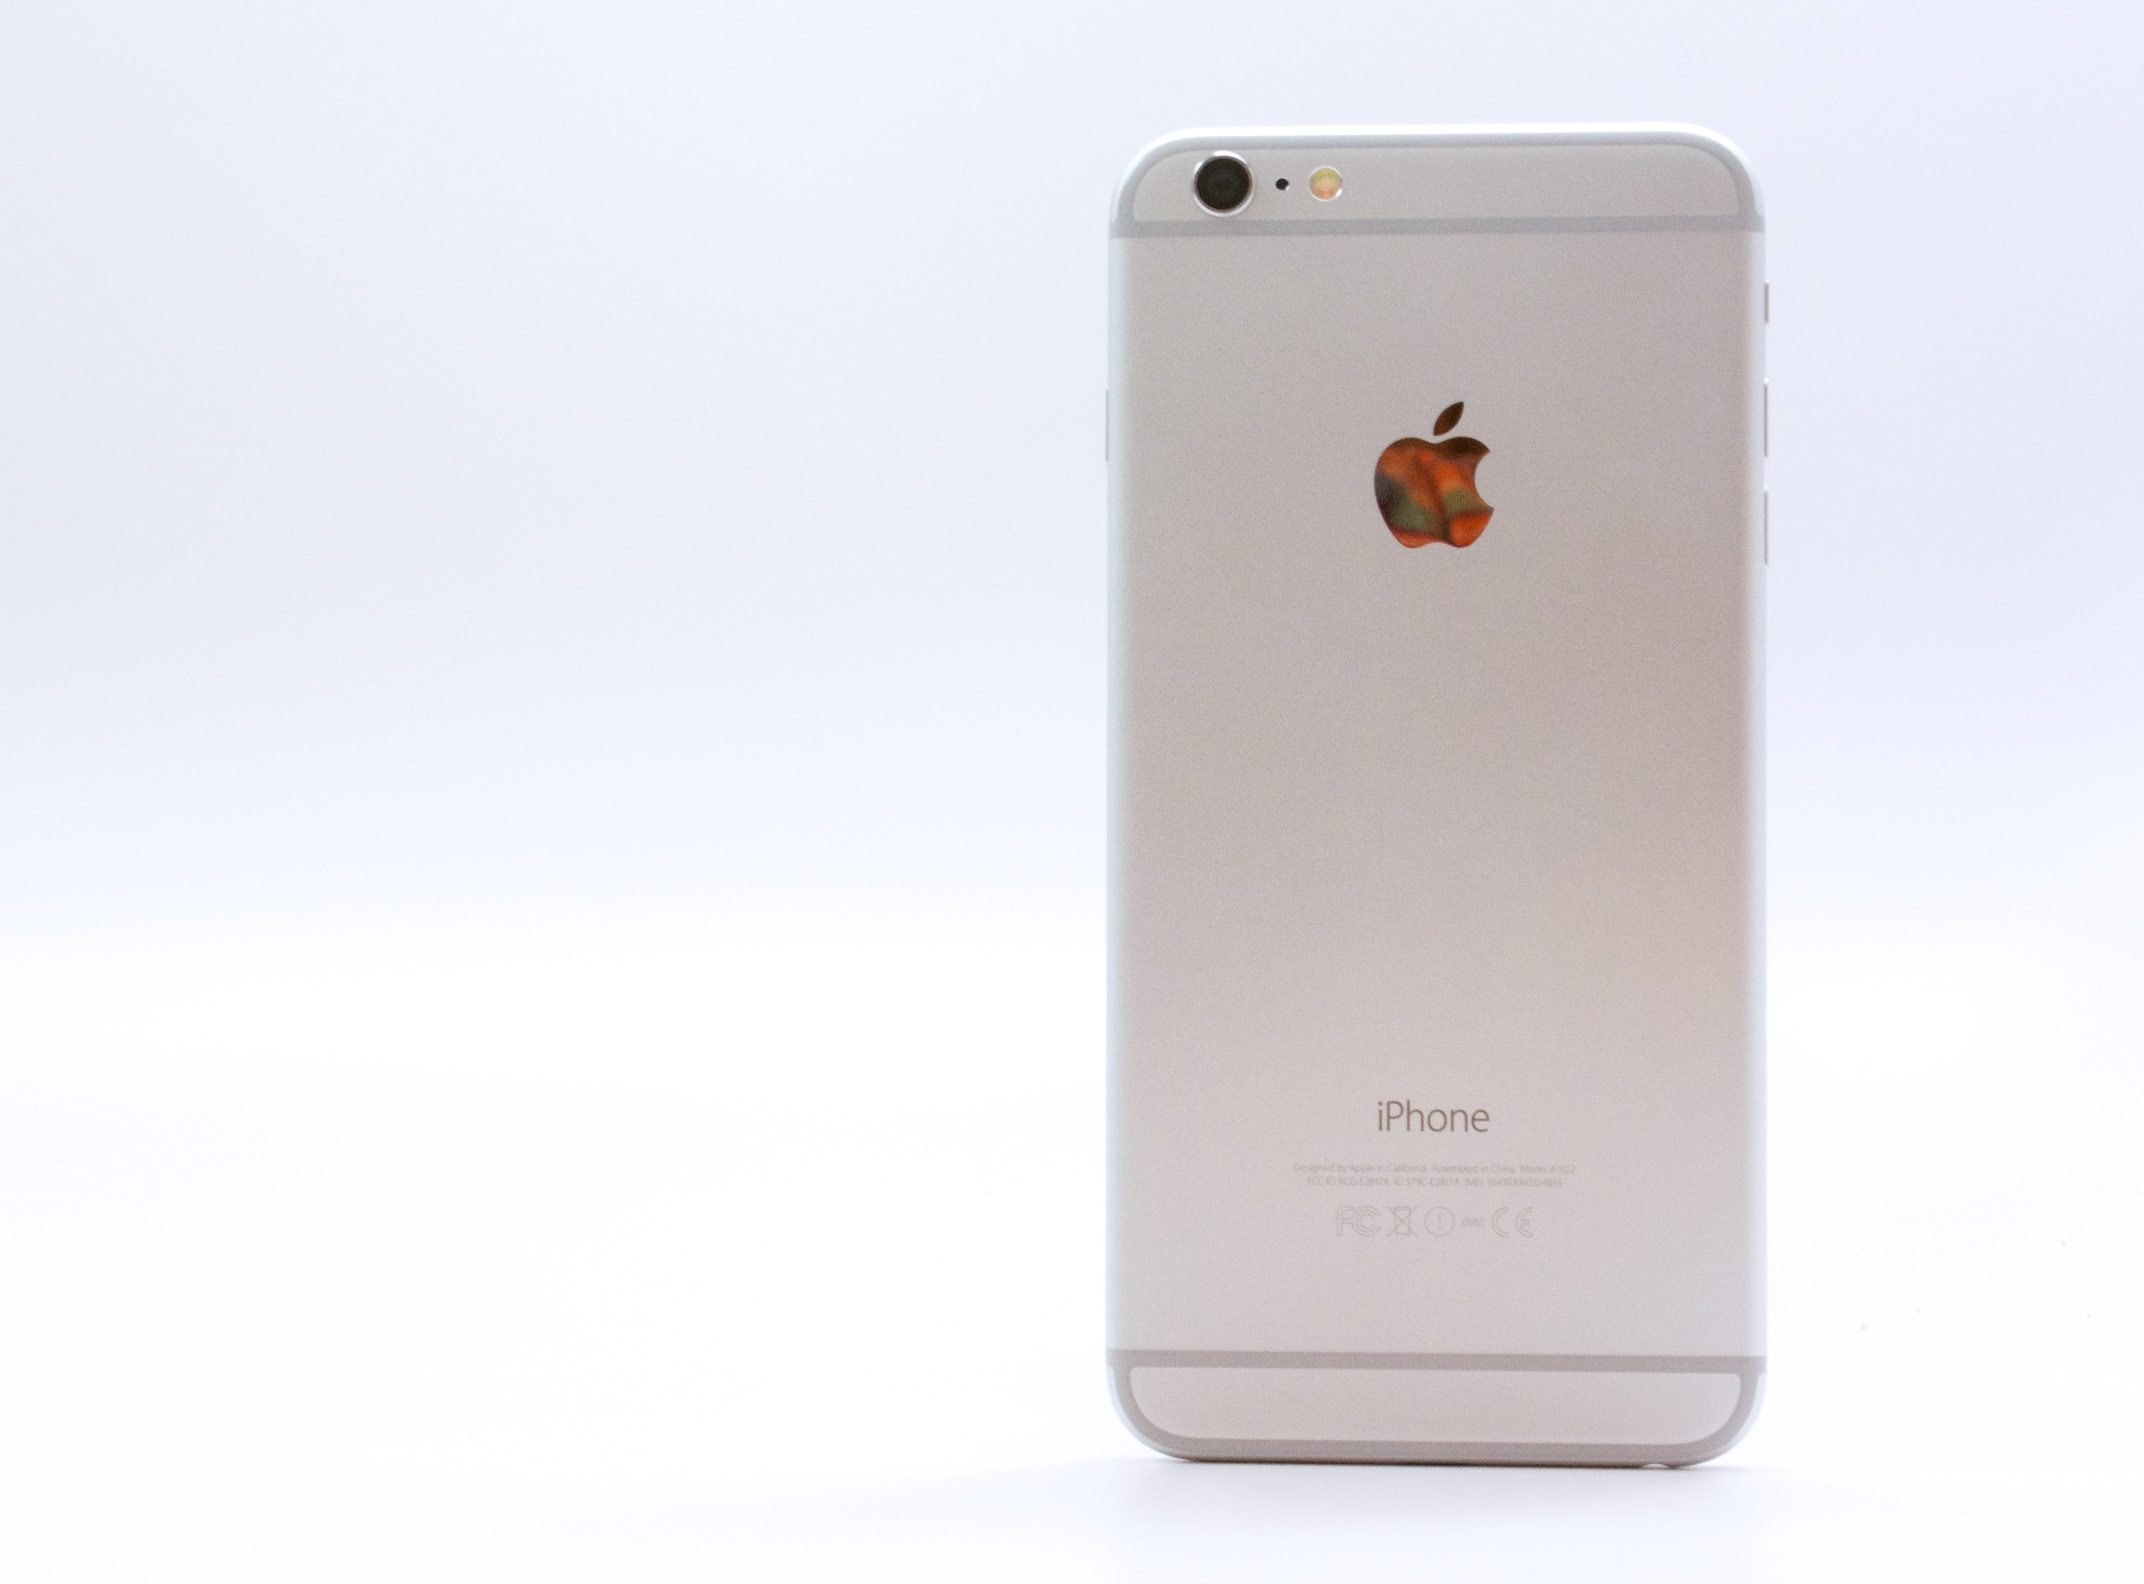 release date for iphone 6s iphone 6s release date breakdown 2550